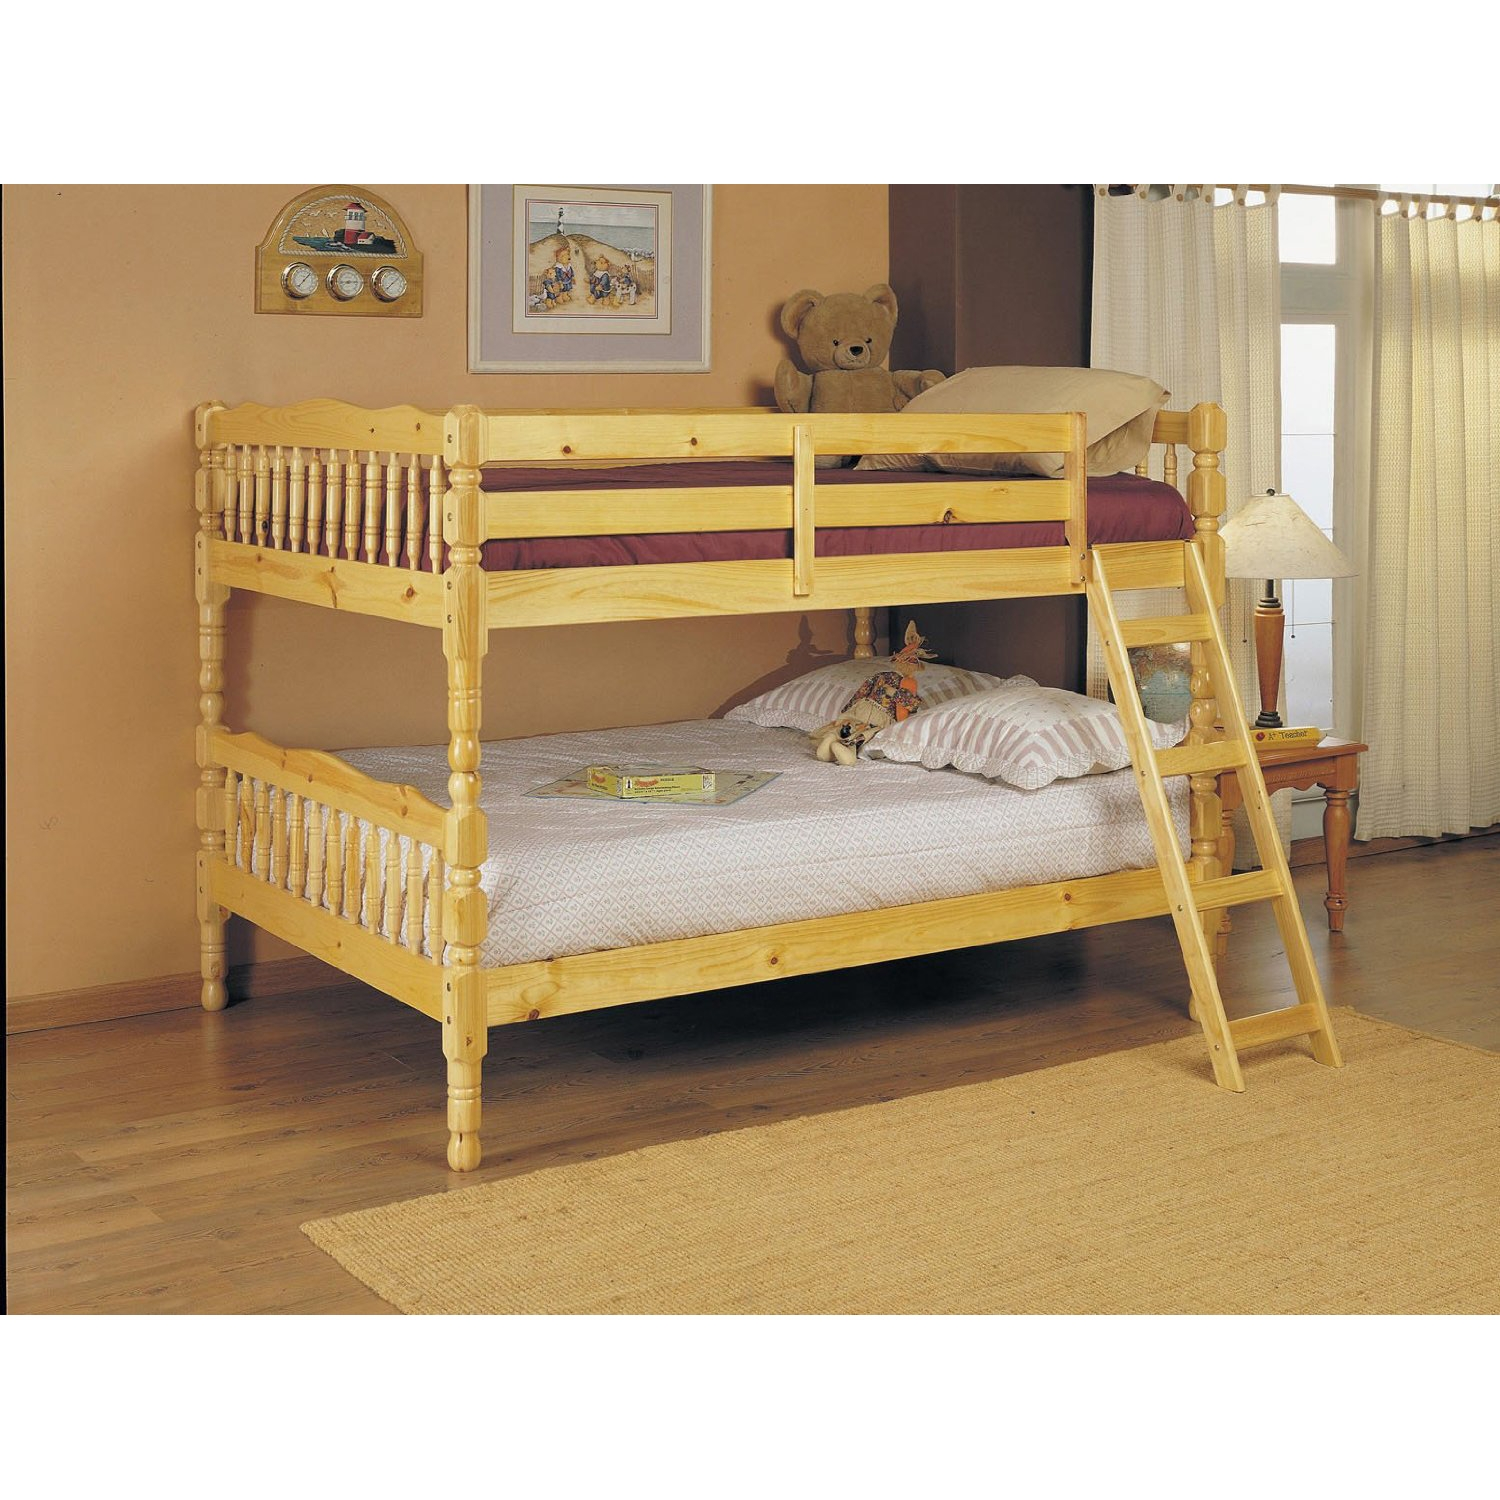 Picture of: Full Over Full Bunk Bed With Ladder In Natural Light Wood Finish Fastfurnishings Com